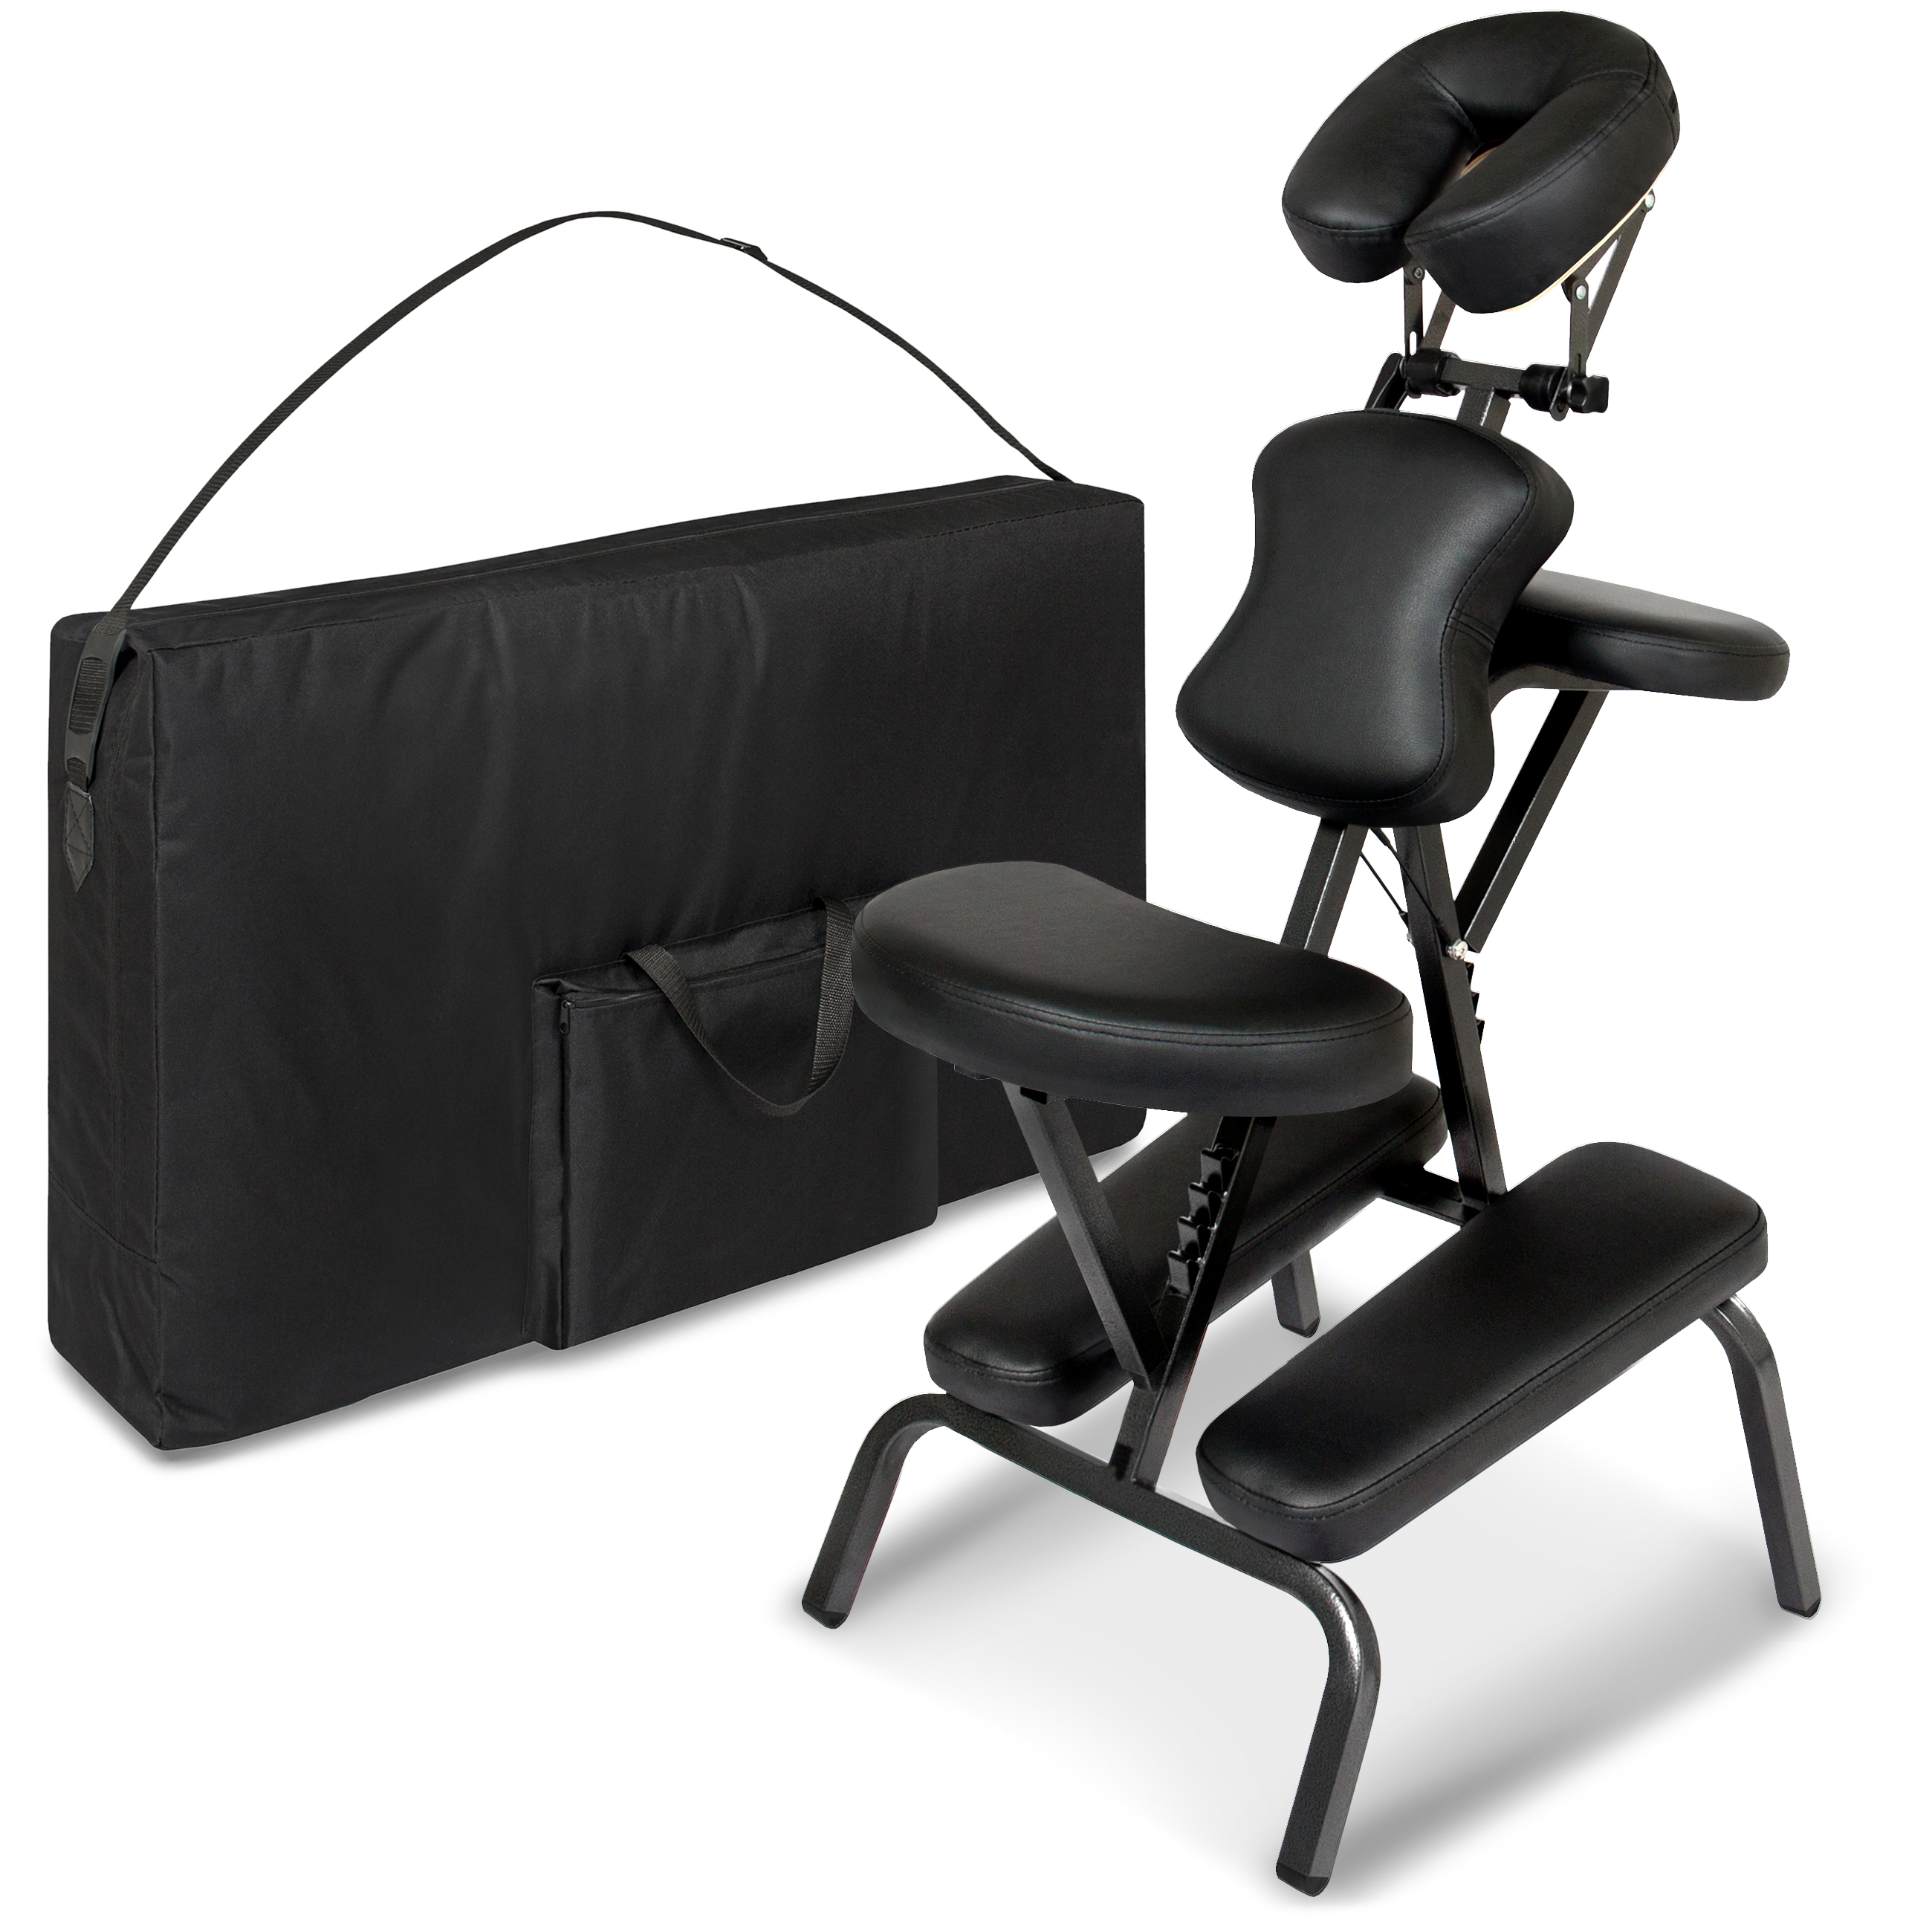 chair gym dvd set patio stacking chairs canada best choice products folding portable light weight massage therapy w carrying bag case black walmart com